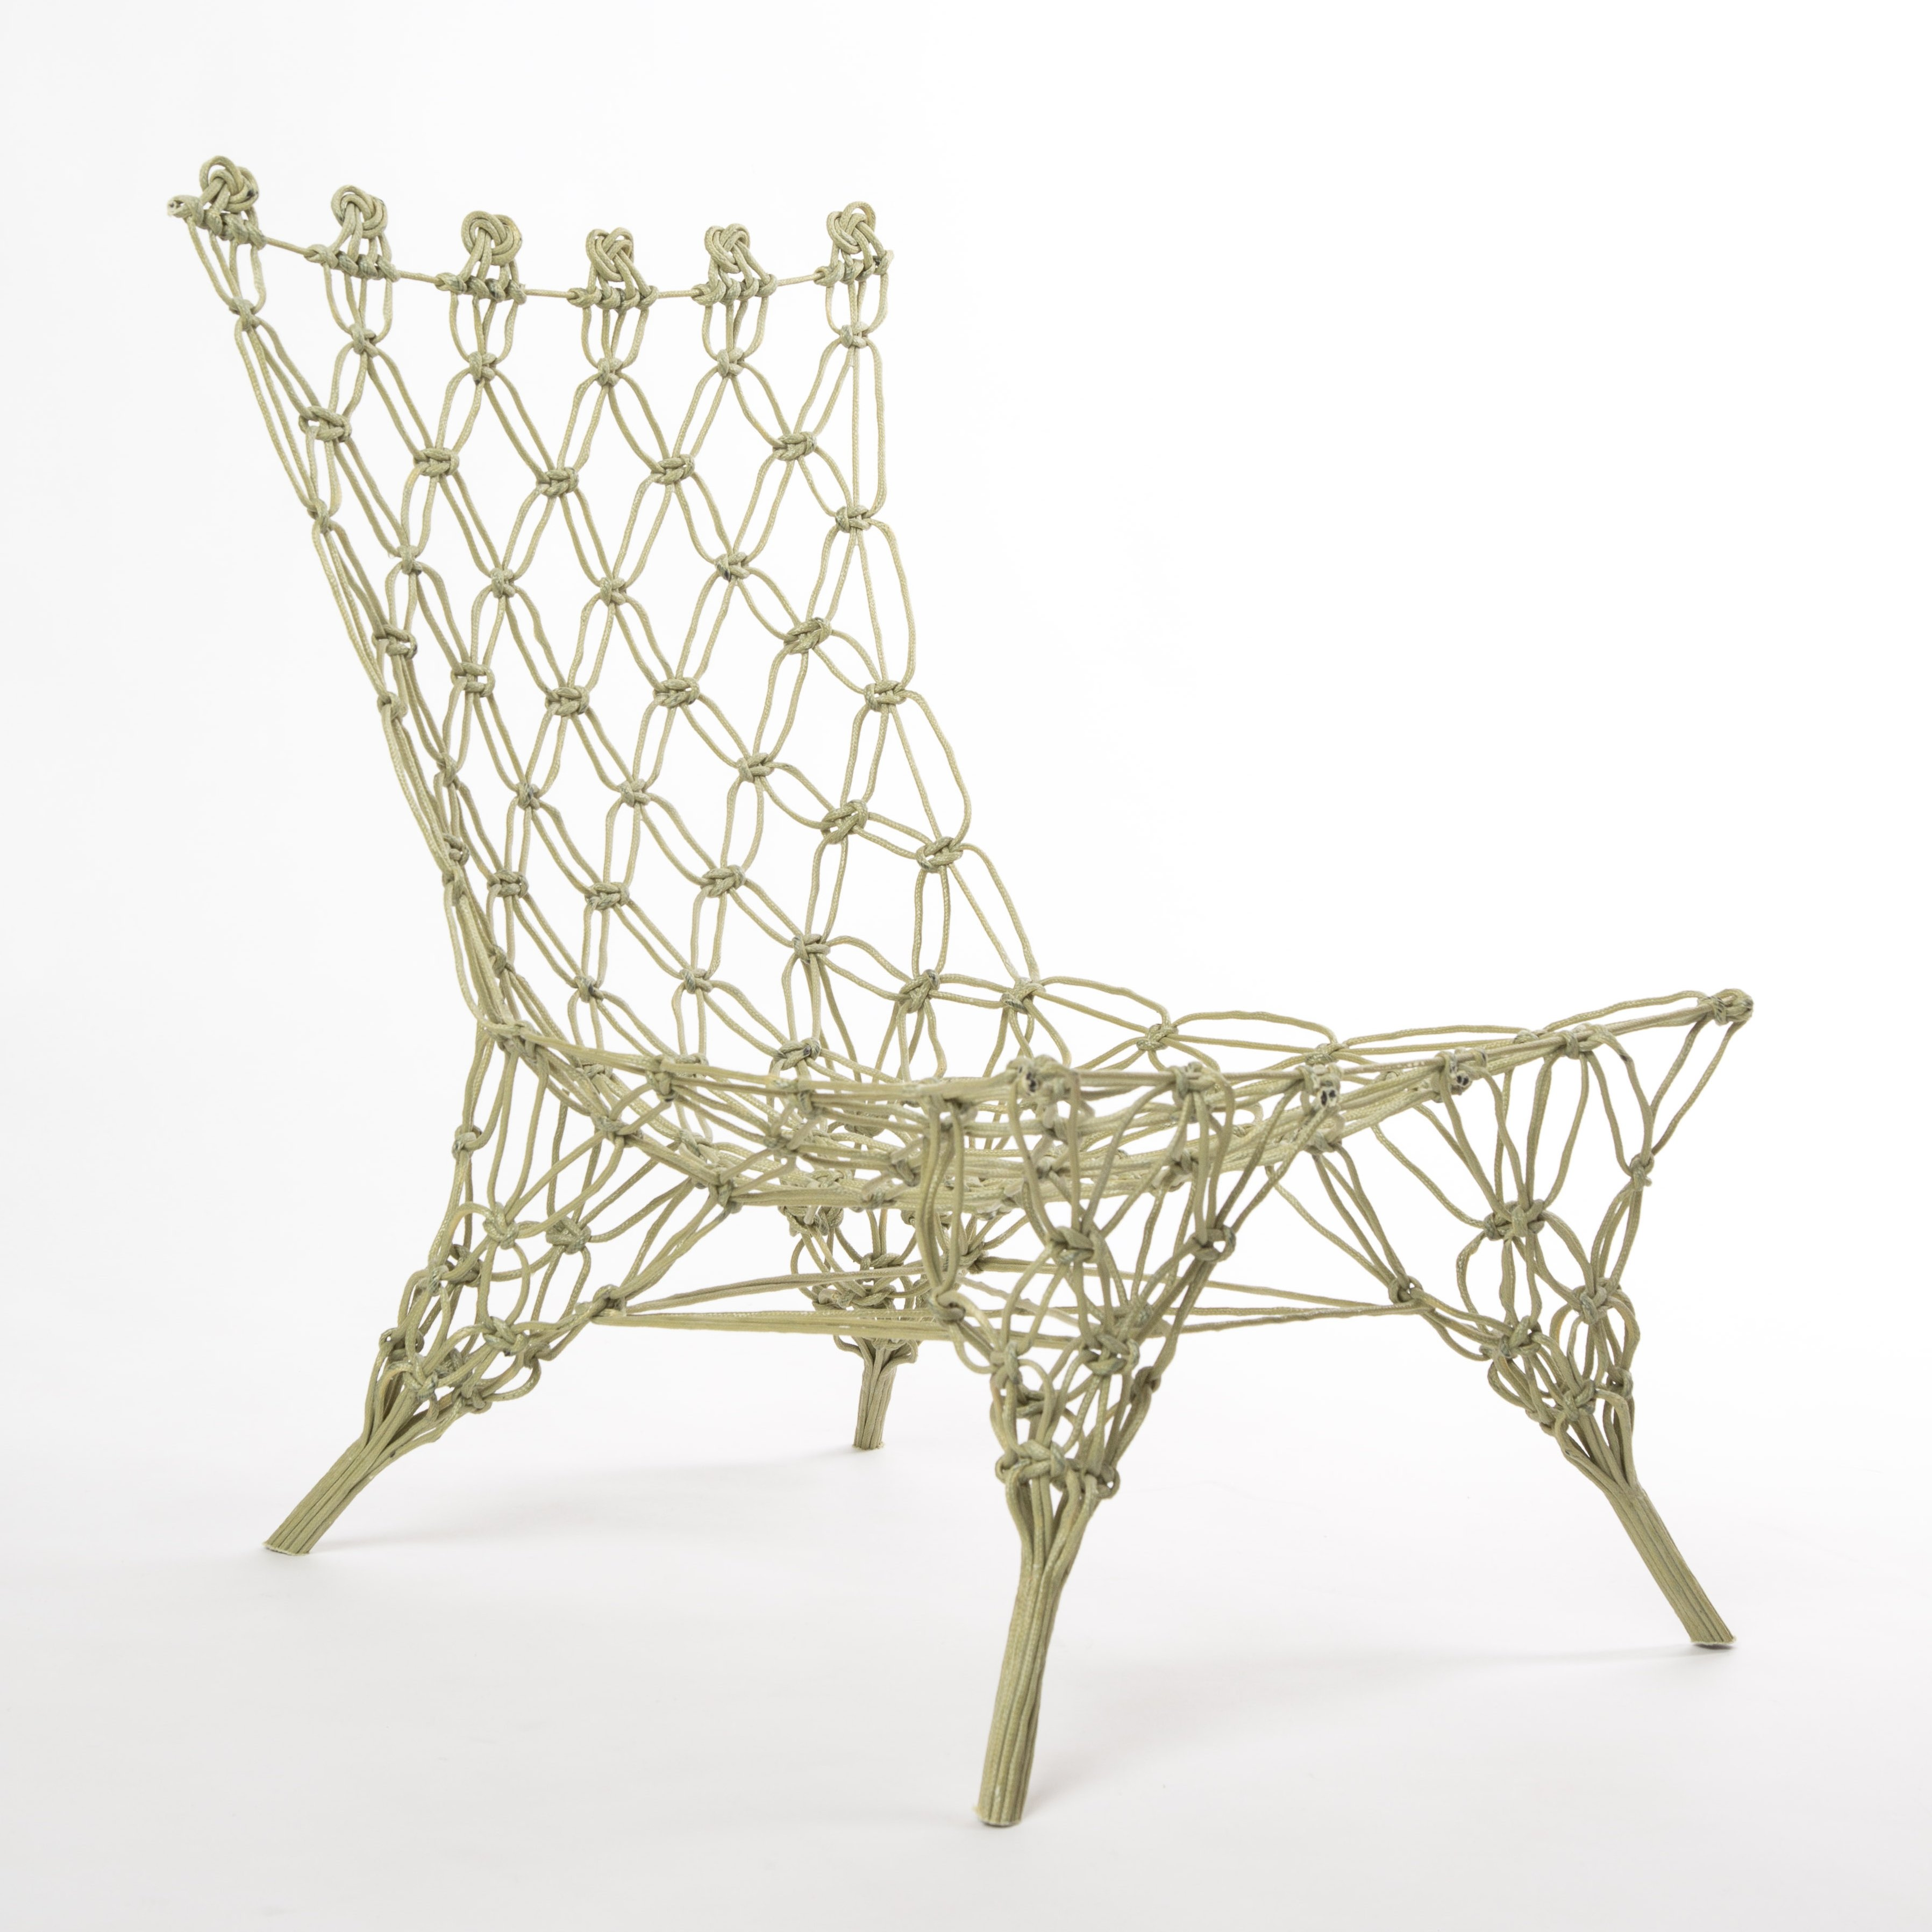 Marcel Wanders Design.Marcel Wanders Knotted Chair Of Carbon Aramide For Droog